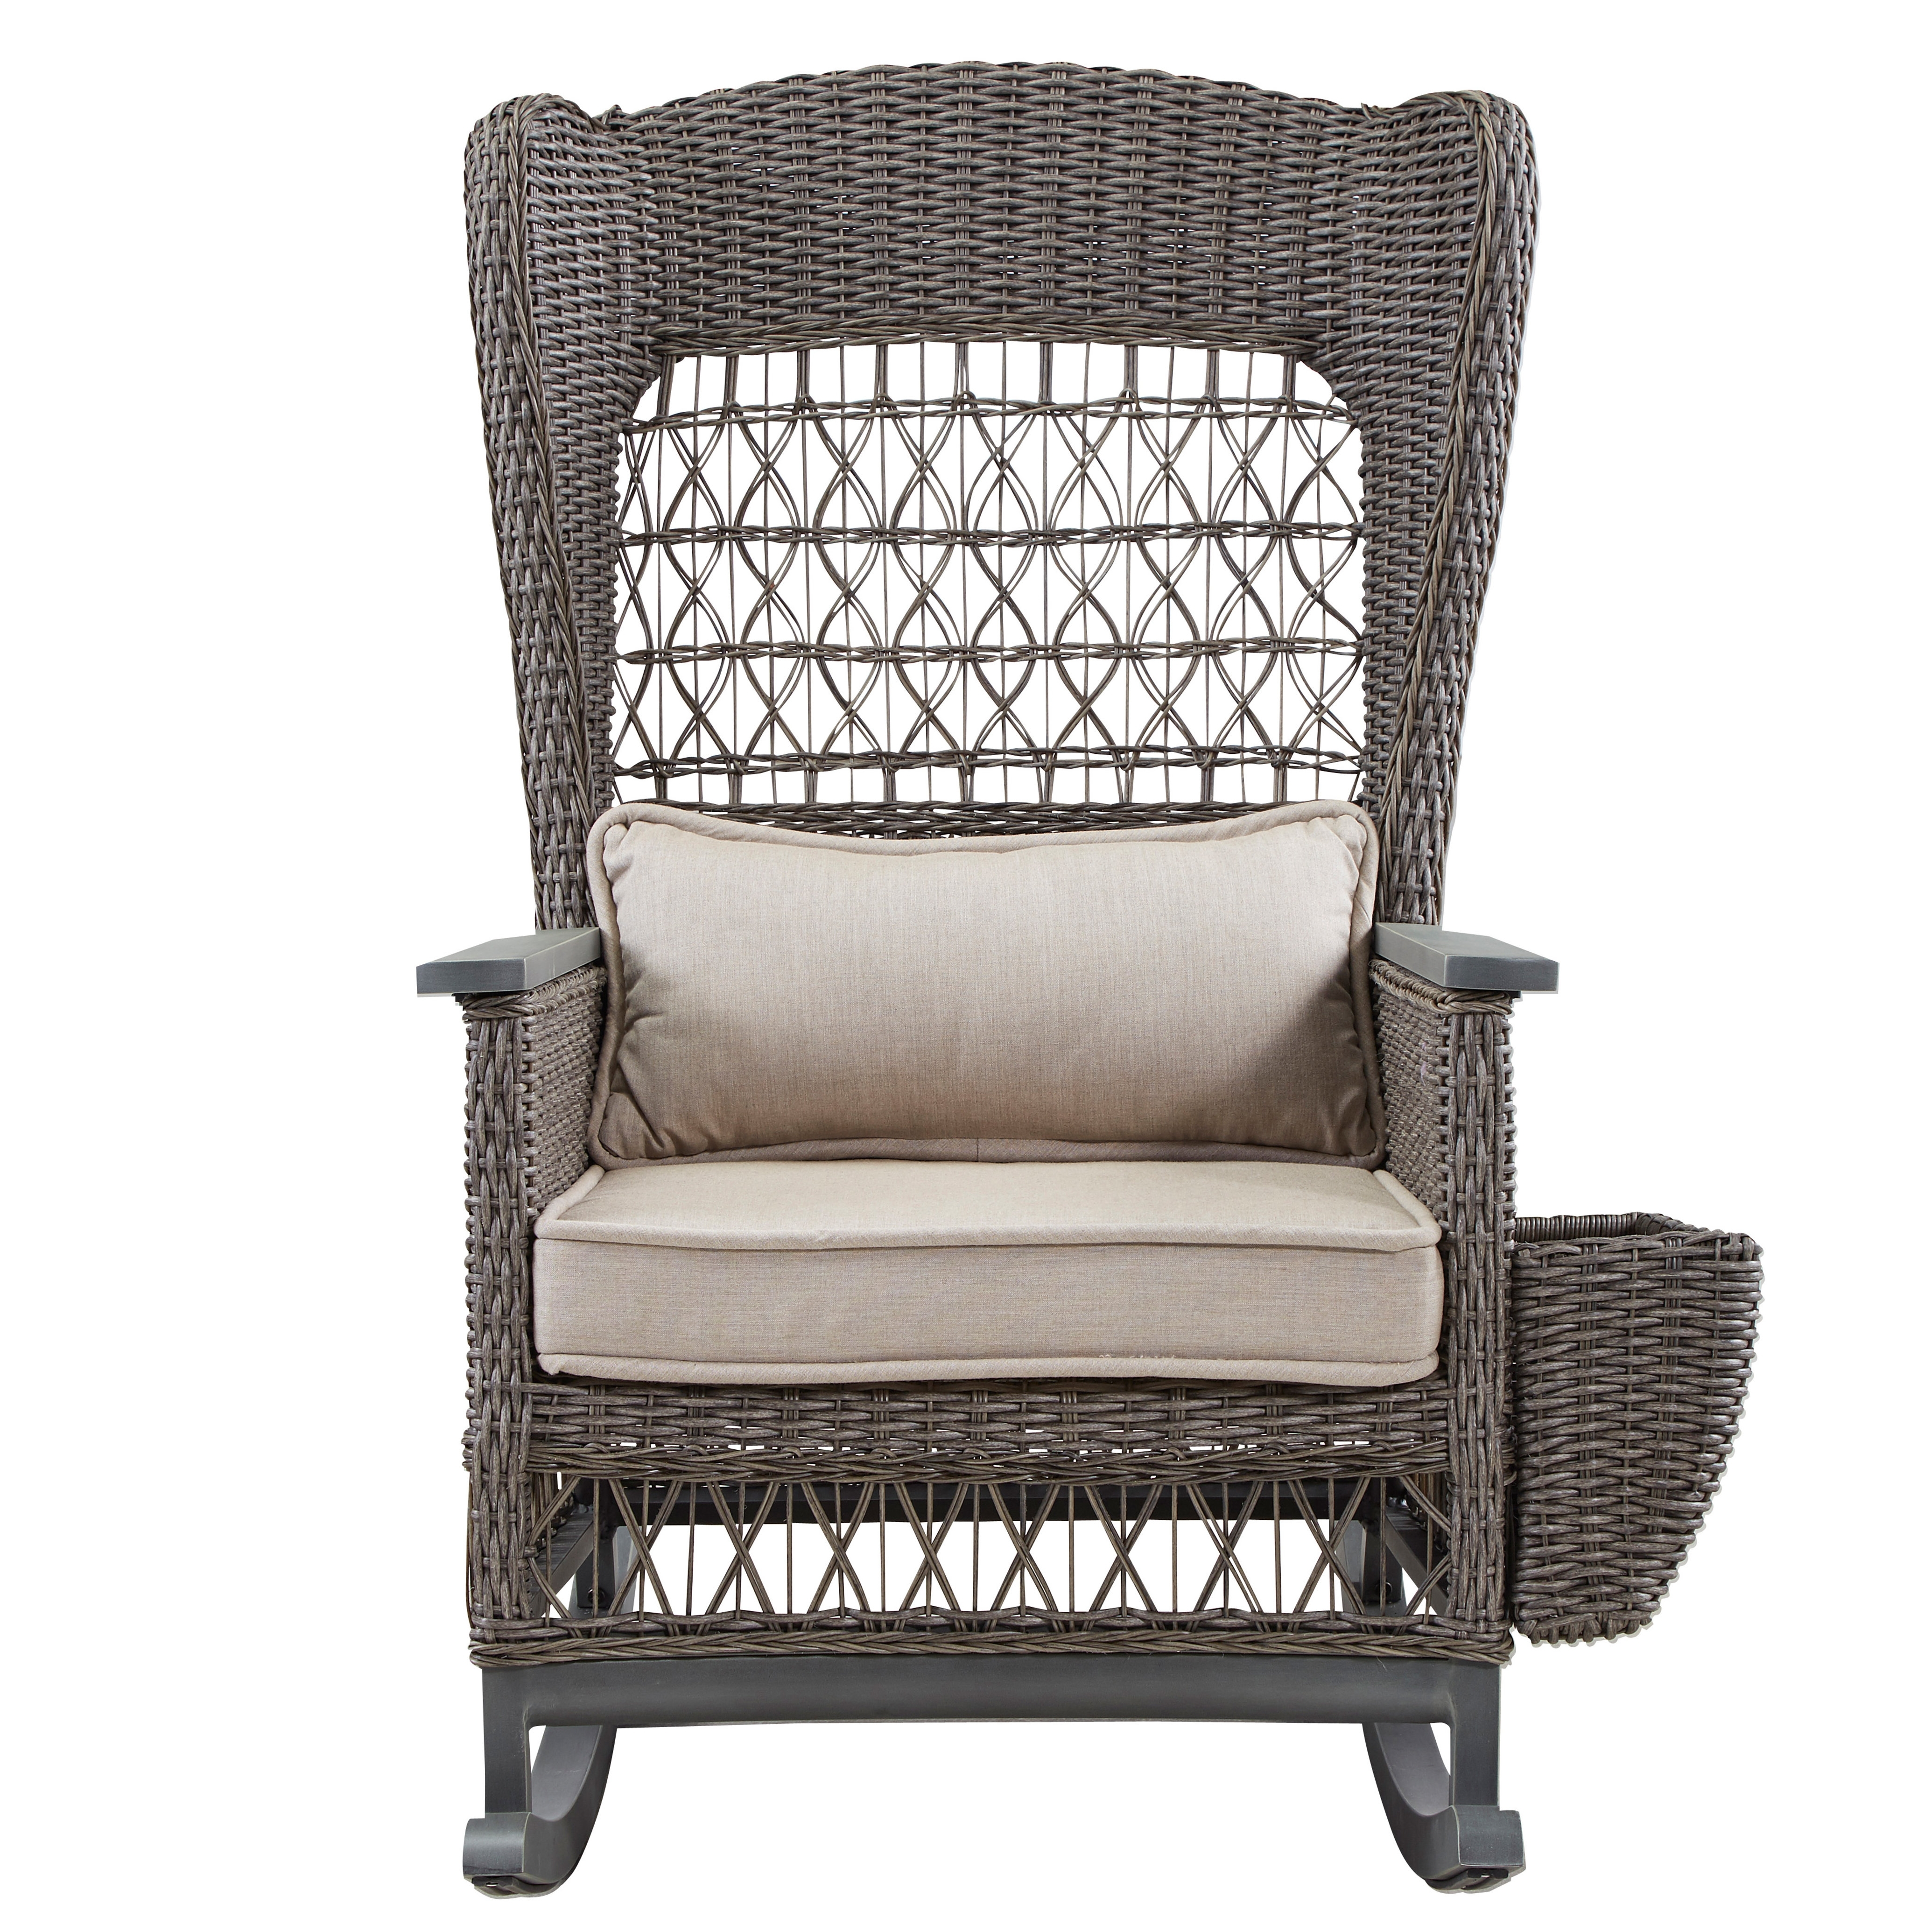 Paula Deen Home Dogwood Rocking Chair With Cushions | Wayfair For Wicker Rocking Chair With Magazine Holder (#11 of 15)